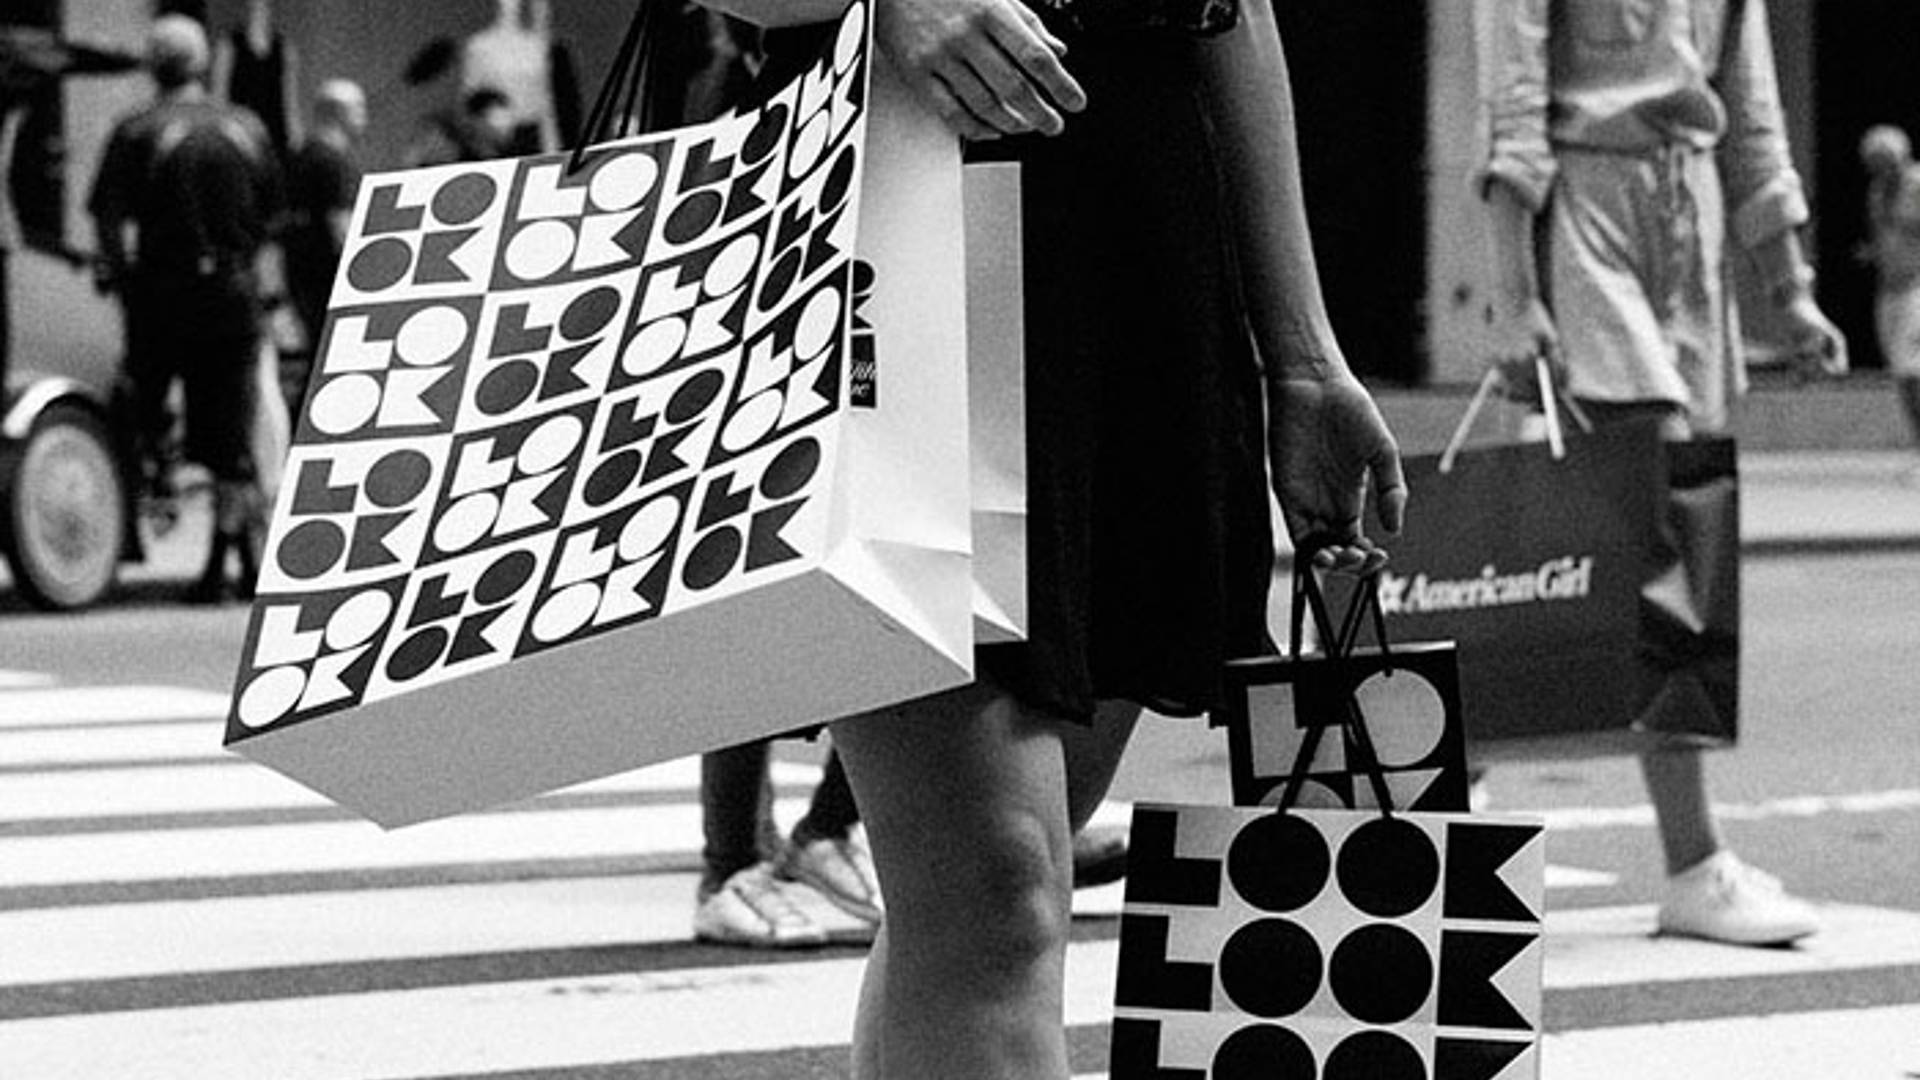 a50a45ced4b4 Saks 5th Ave's LOOK Campaign by Pentagram | Dieline